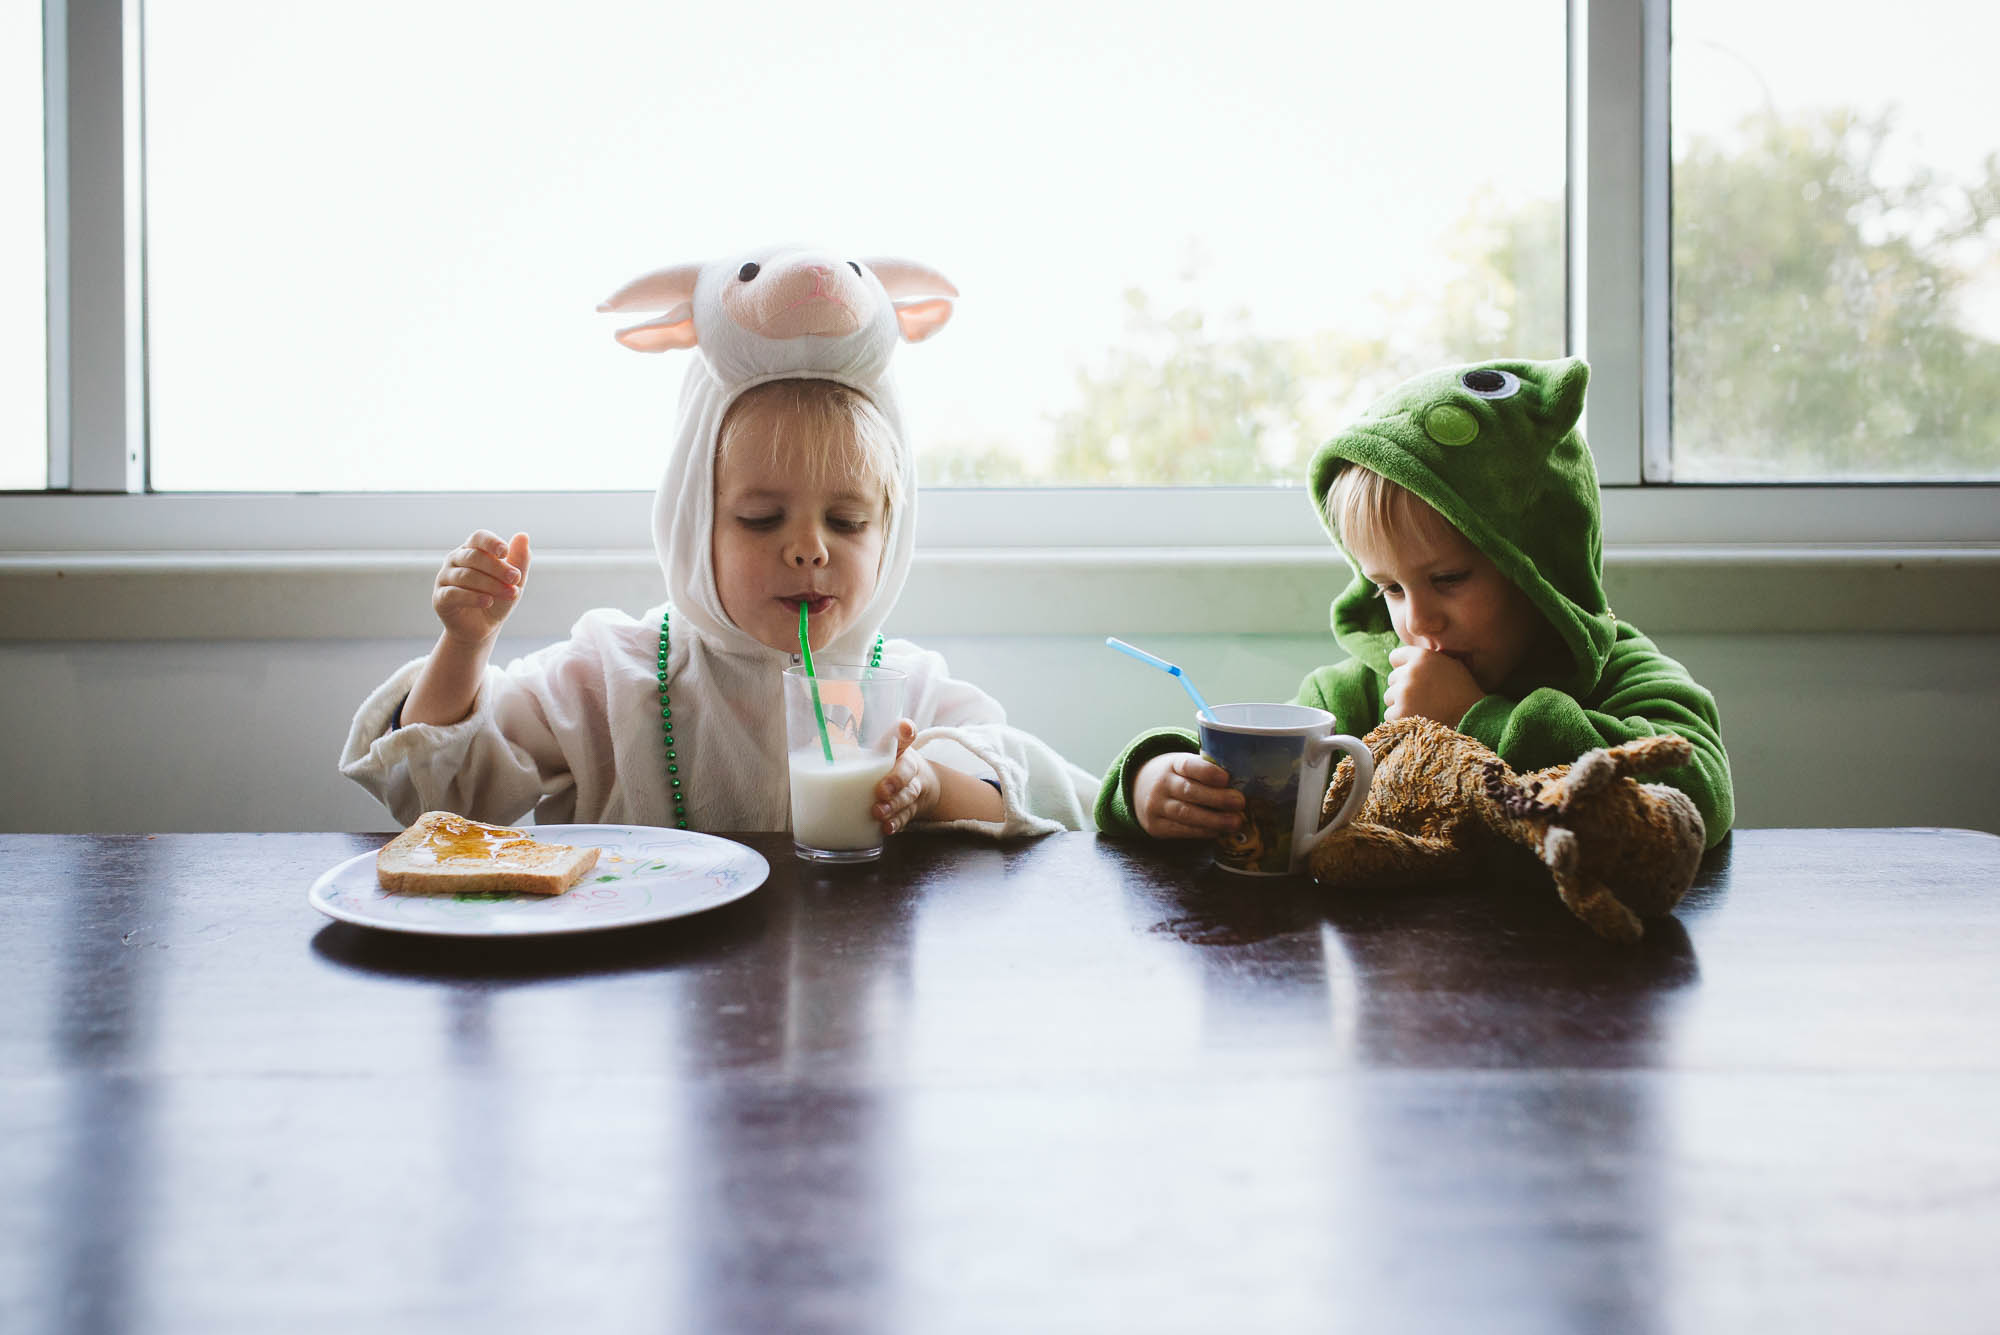 melbourne_family_photographer_toddlers_eating_in_animal_dressups-1.jpg